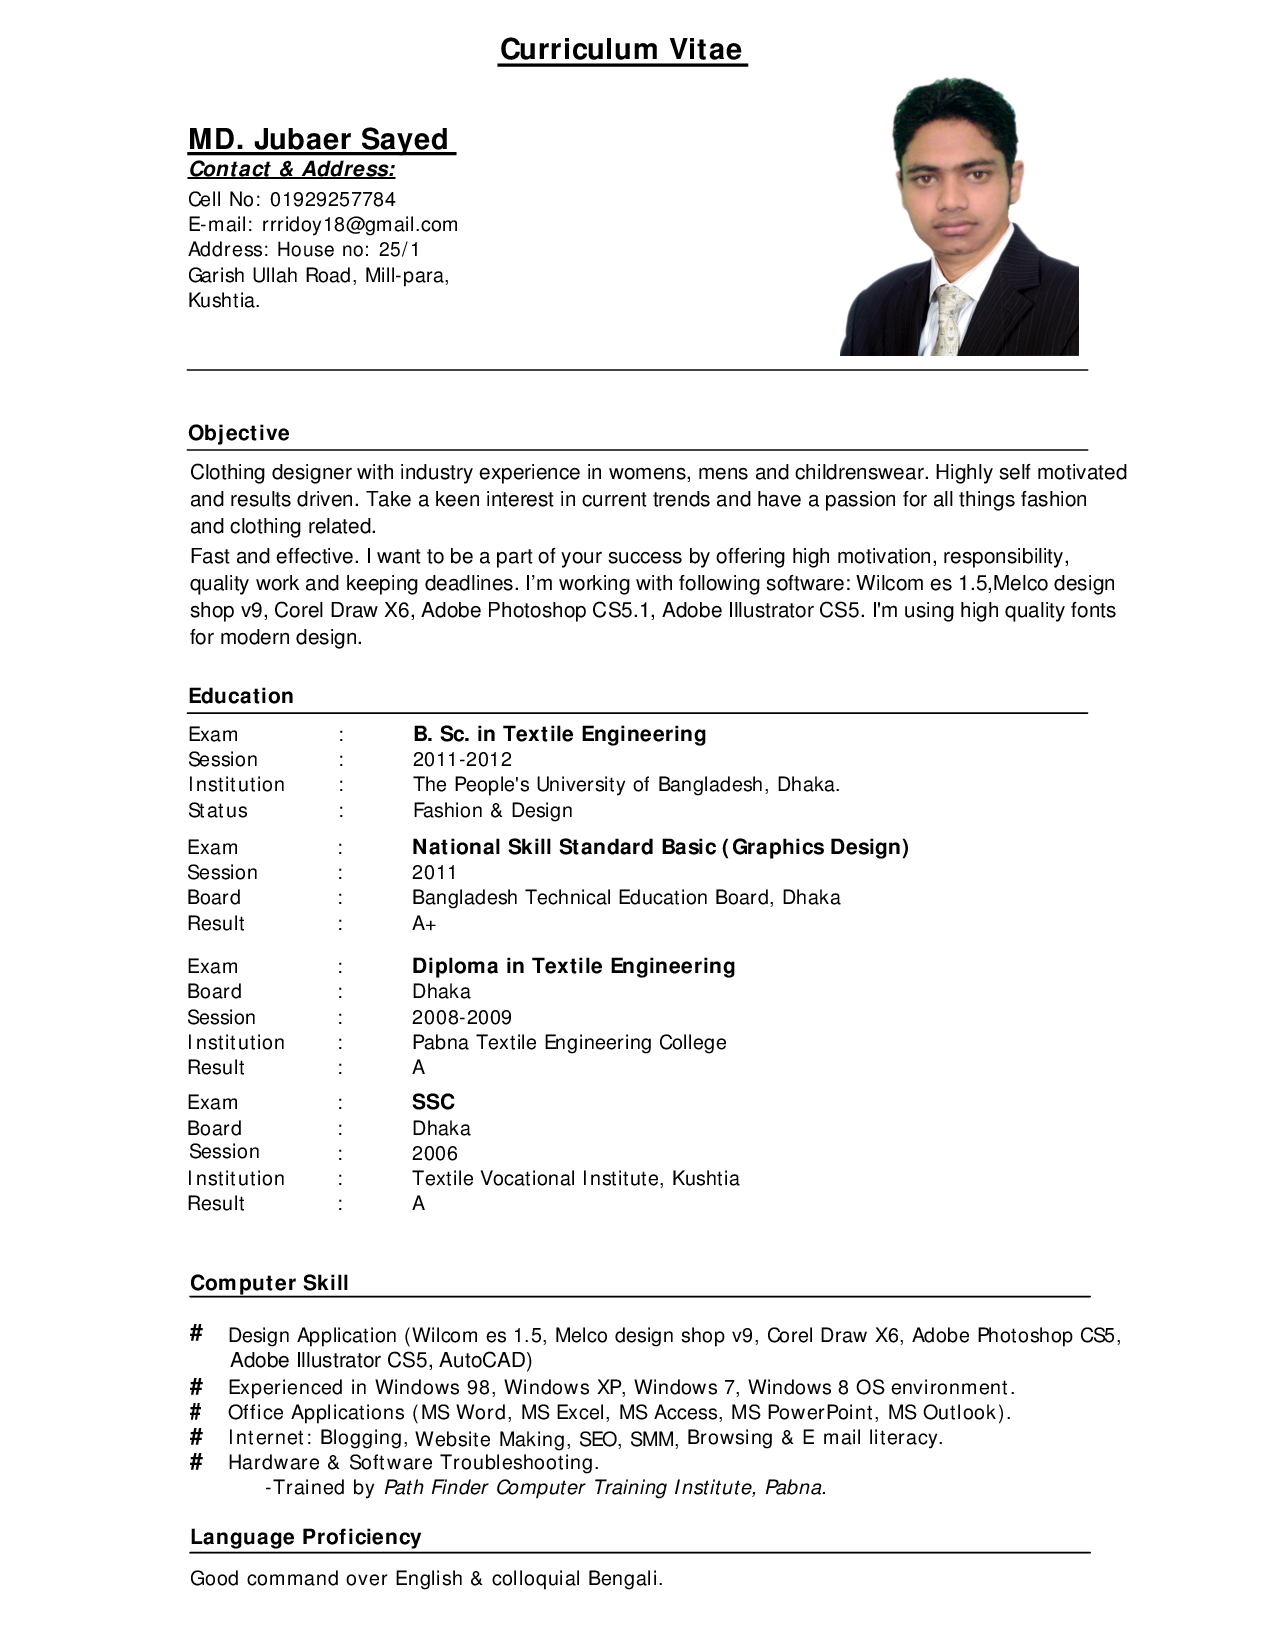 how to make a modern curriculum vitae